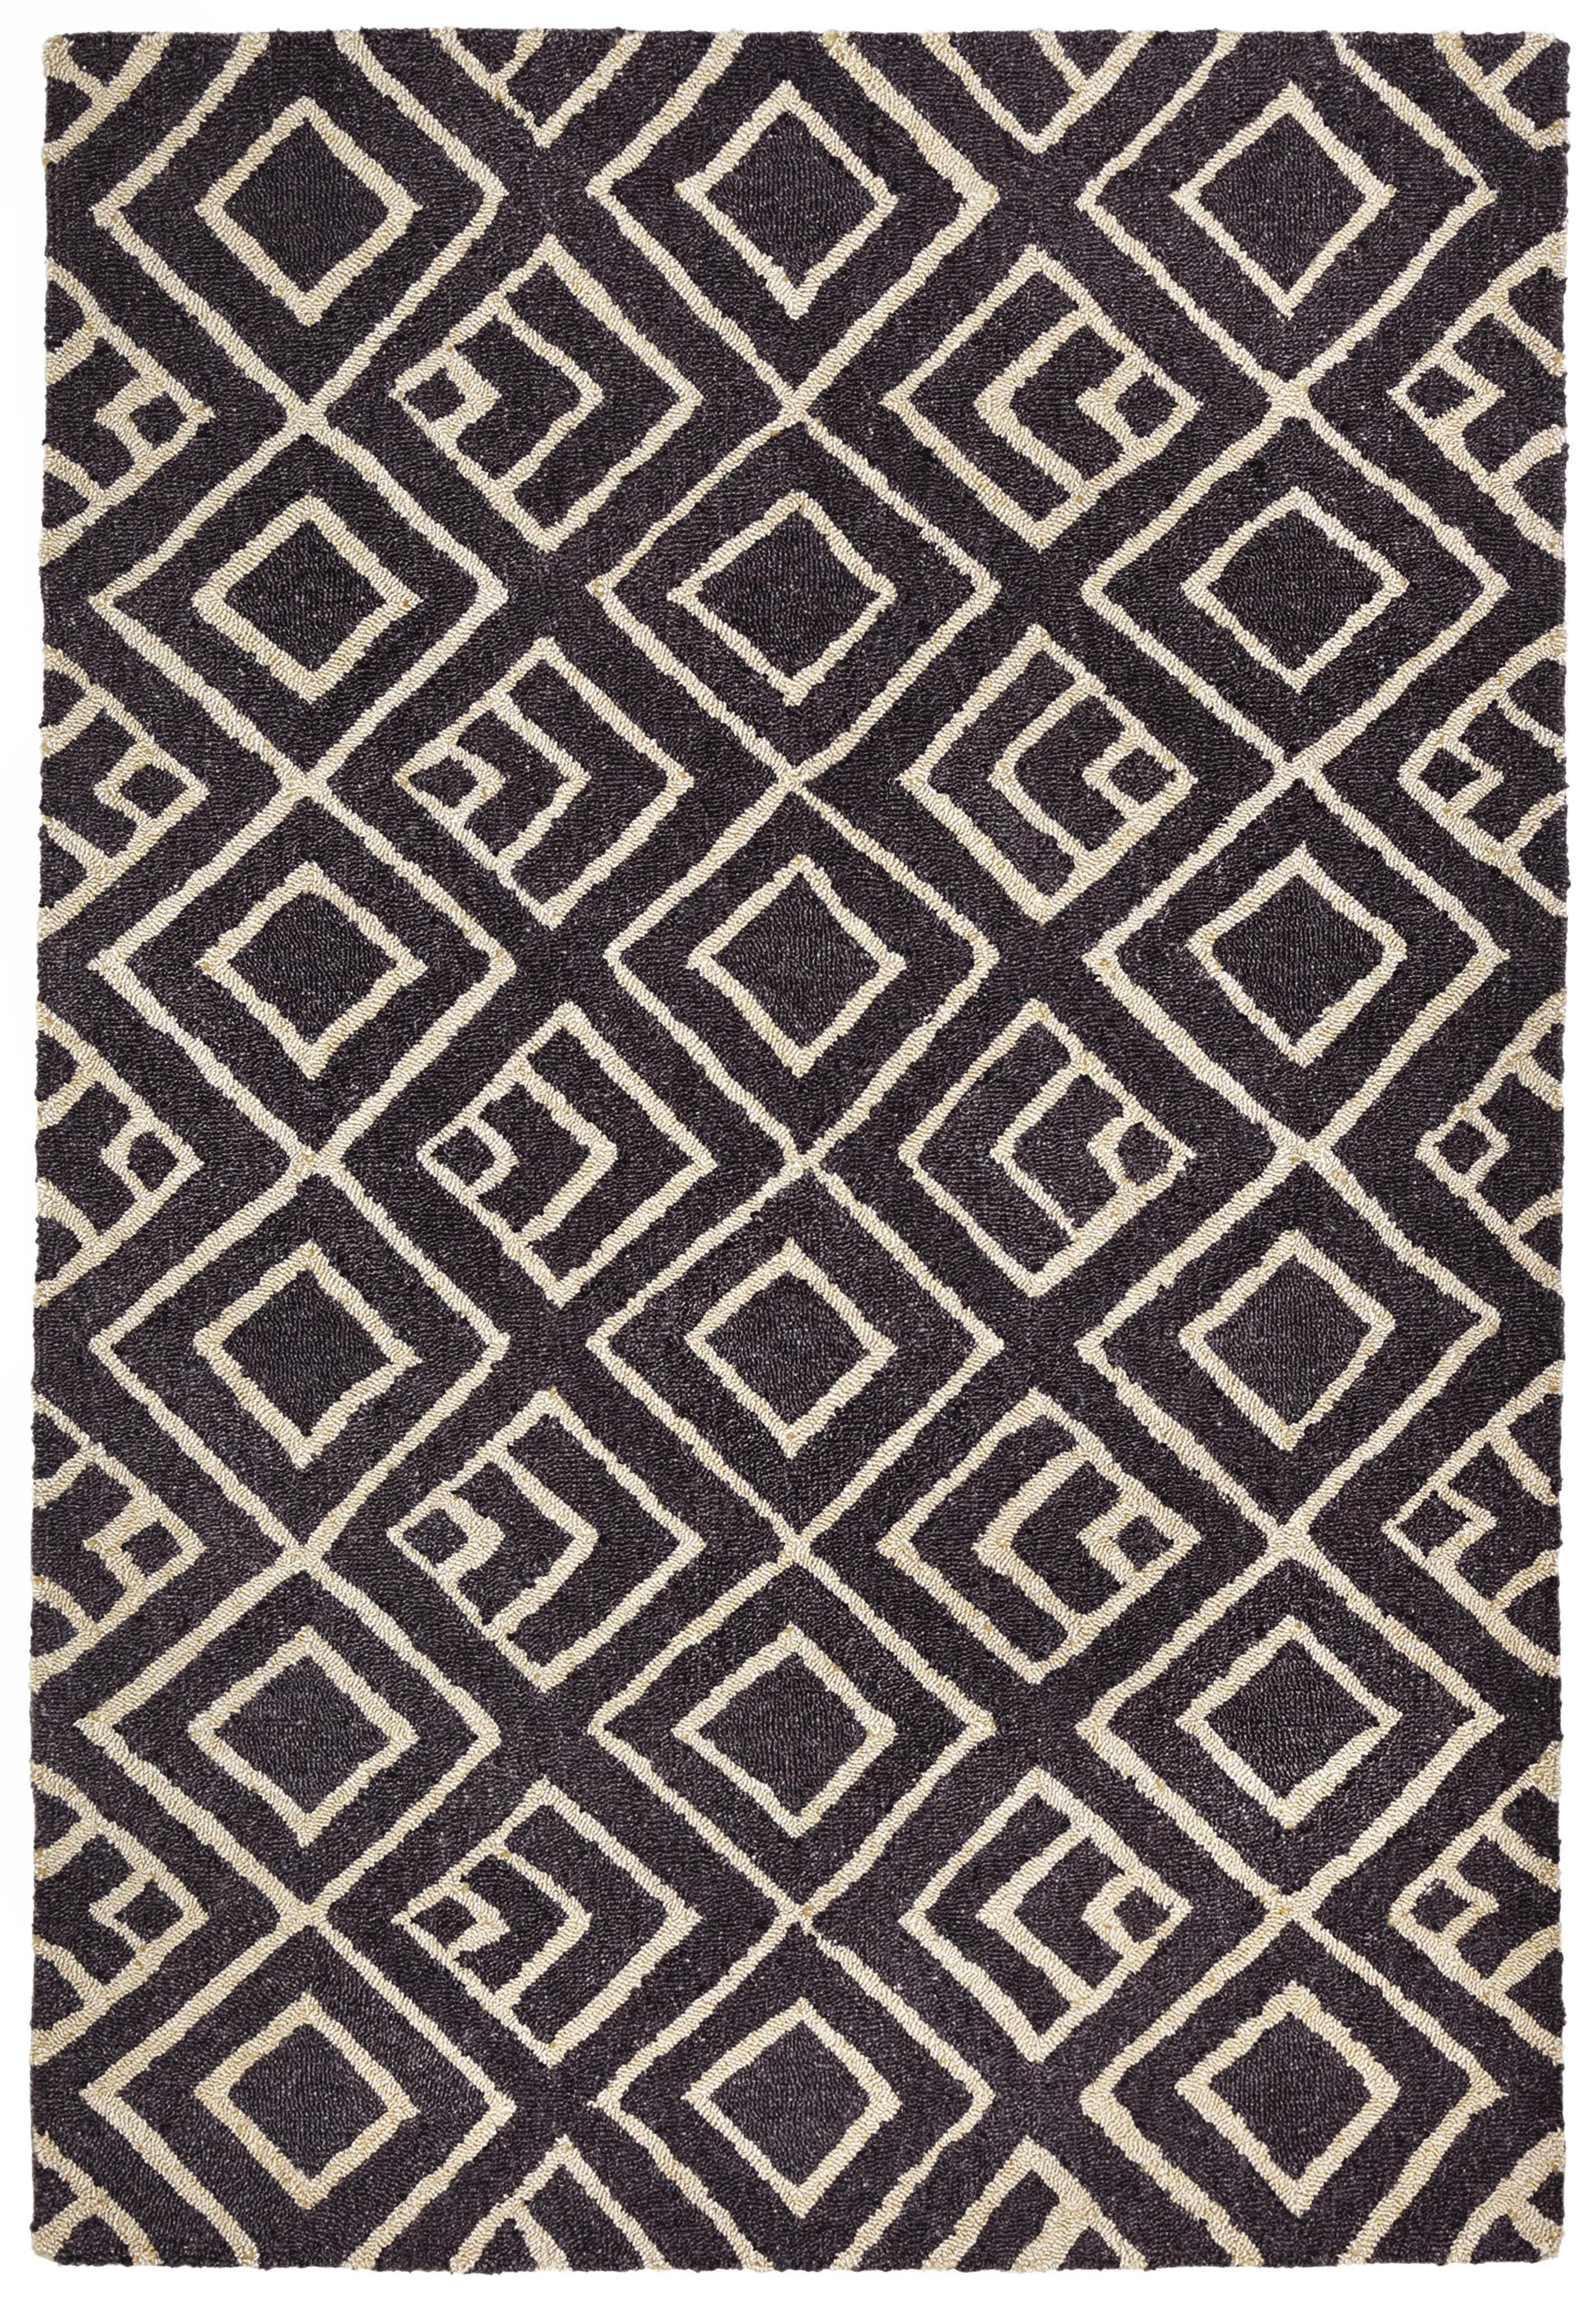 Your Source For The Finest Rugs Home Decor Fashion Accessories Area Rugs Rugs Liora Manne